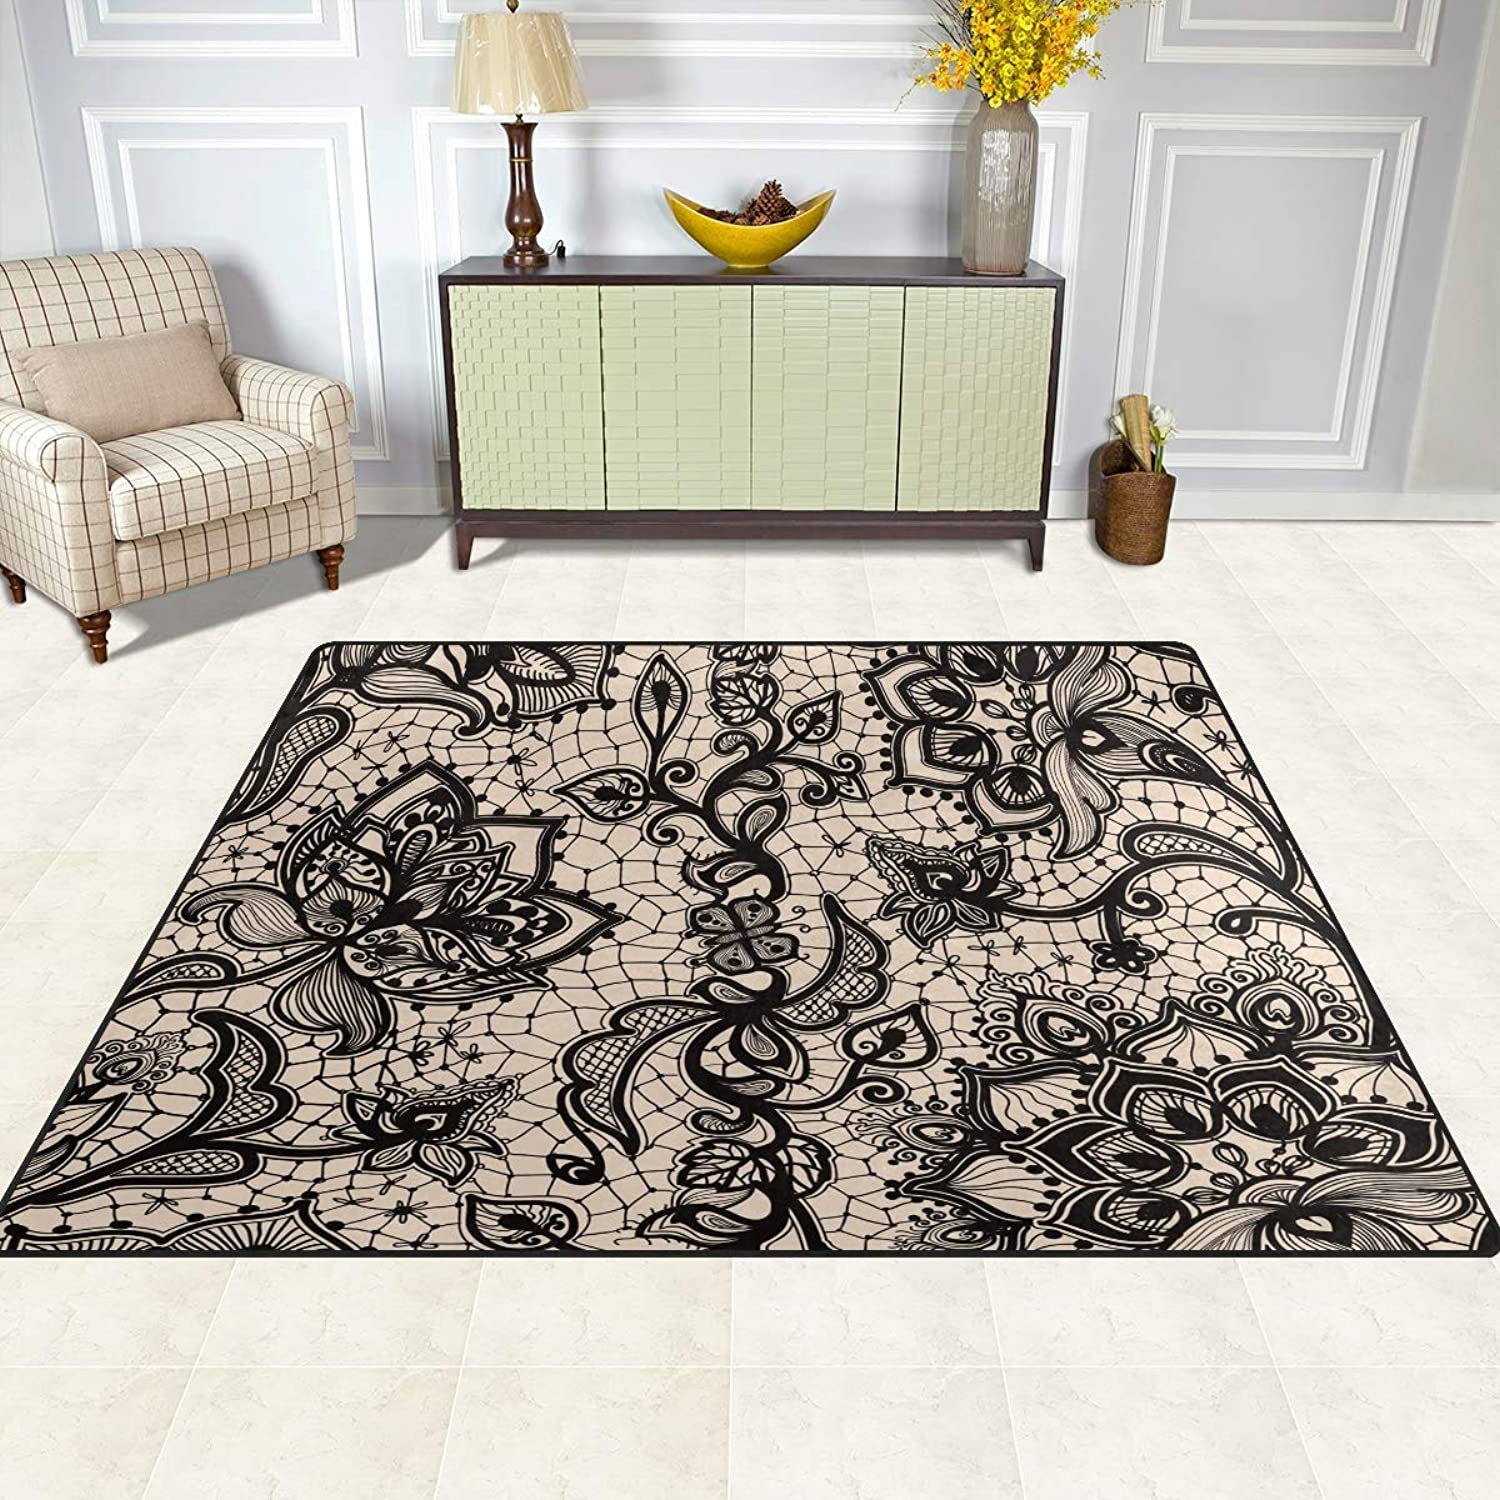 FAJRO Vintage European Flowers Rugs for entryway Doormat Area Rug Multipattern Door Mat shoes Scraper Home Dec Anti-Slip Indoor Outdoor